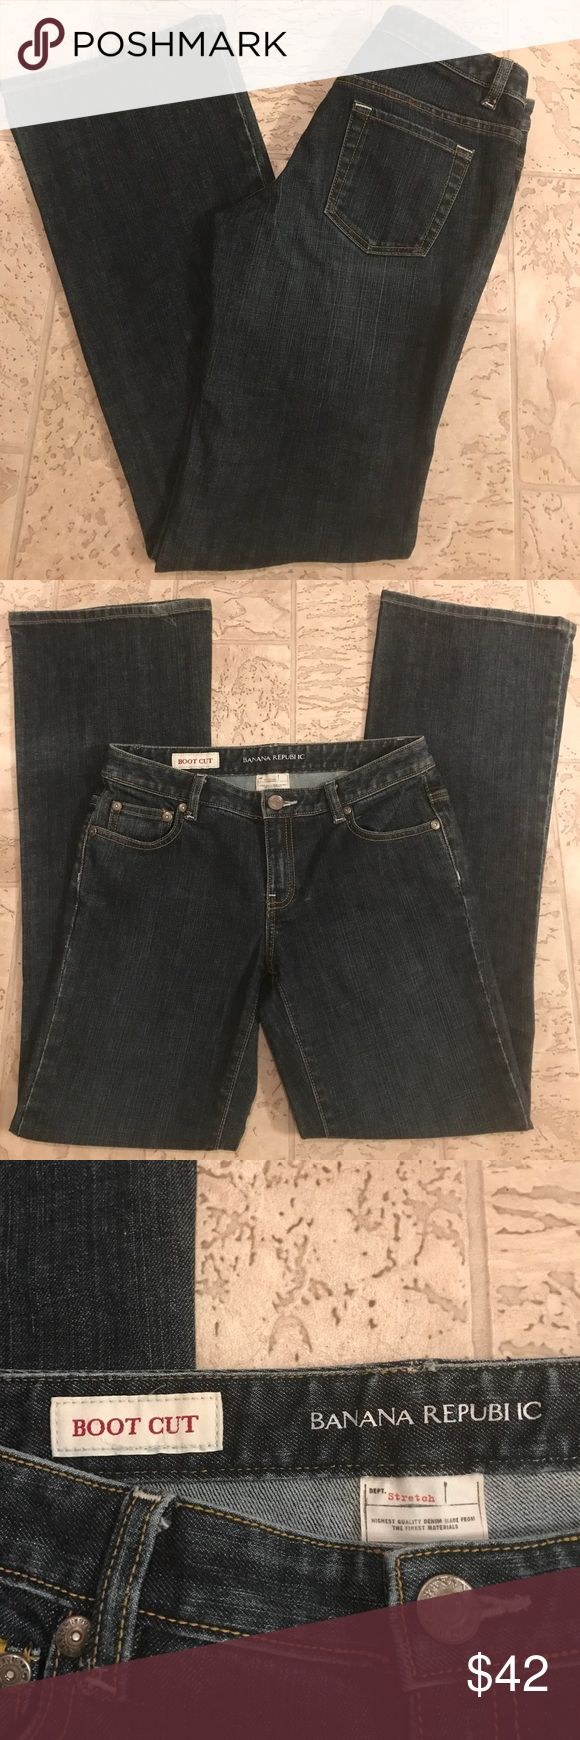 """Banana Republic Boot Cut Jeans Size 4 This is a pair of Boot Cut jeans that are in great condition. They are stretchy. Measurements are: inseam 32"""", waist 16"""" and rise 8"""". Size 4 Banana Republic Jeans Boot Cut"""